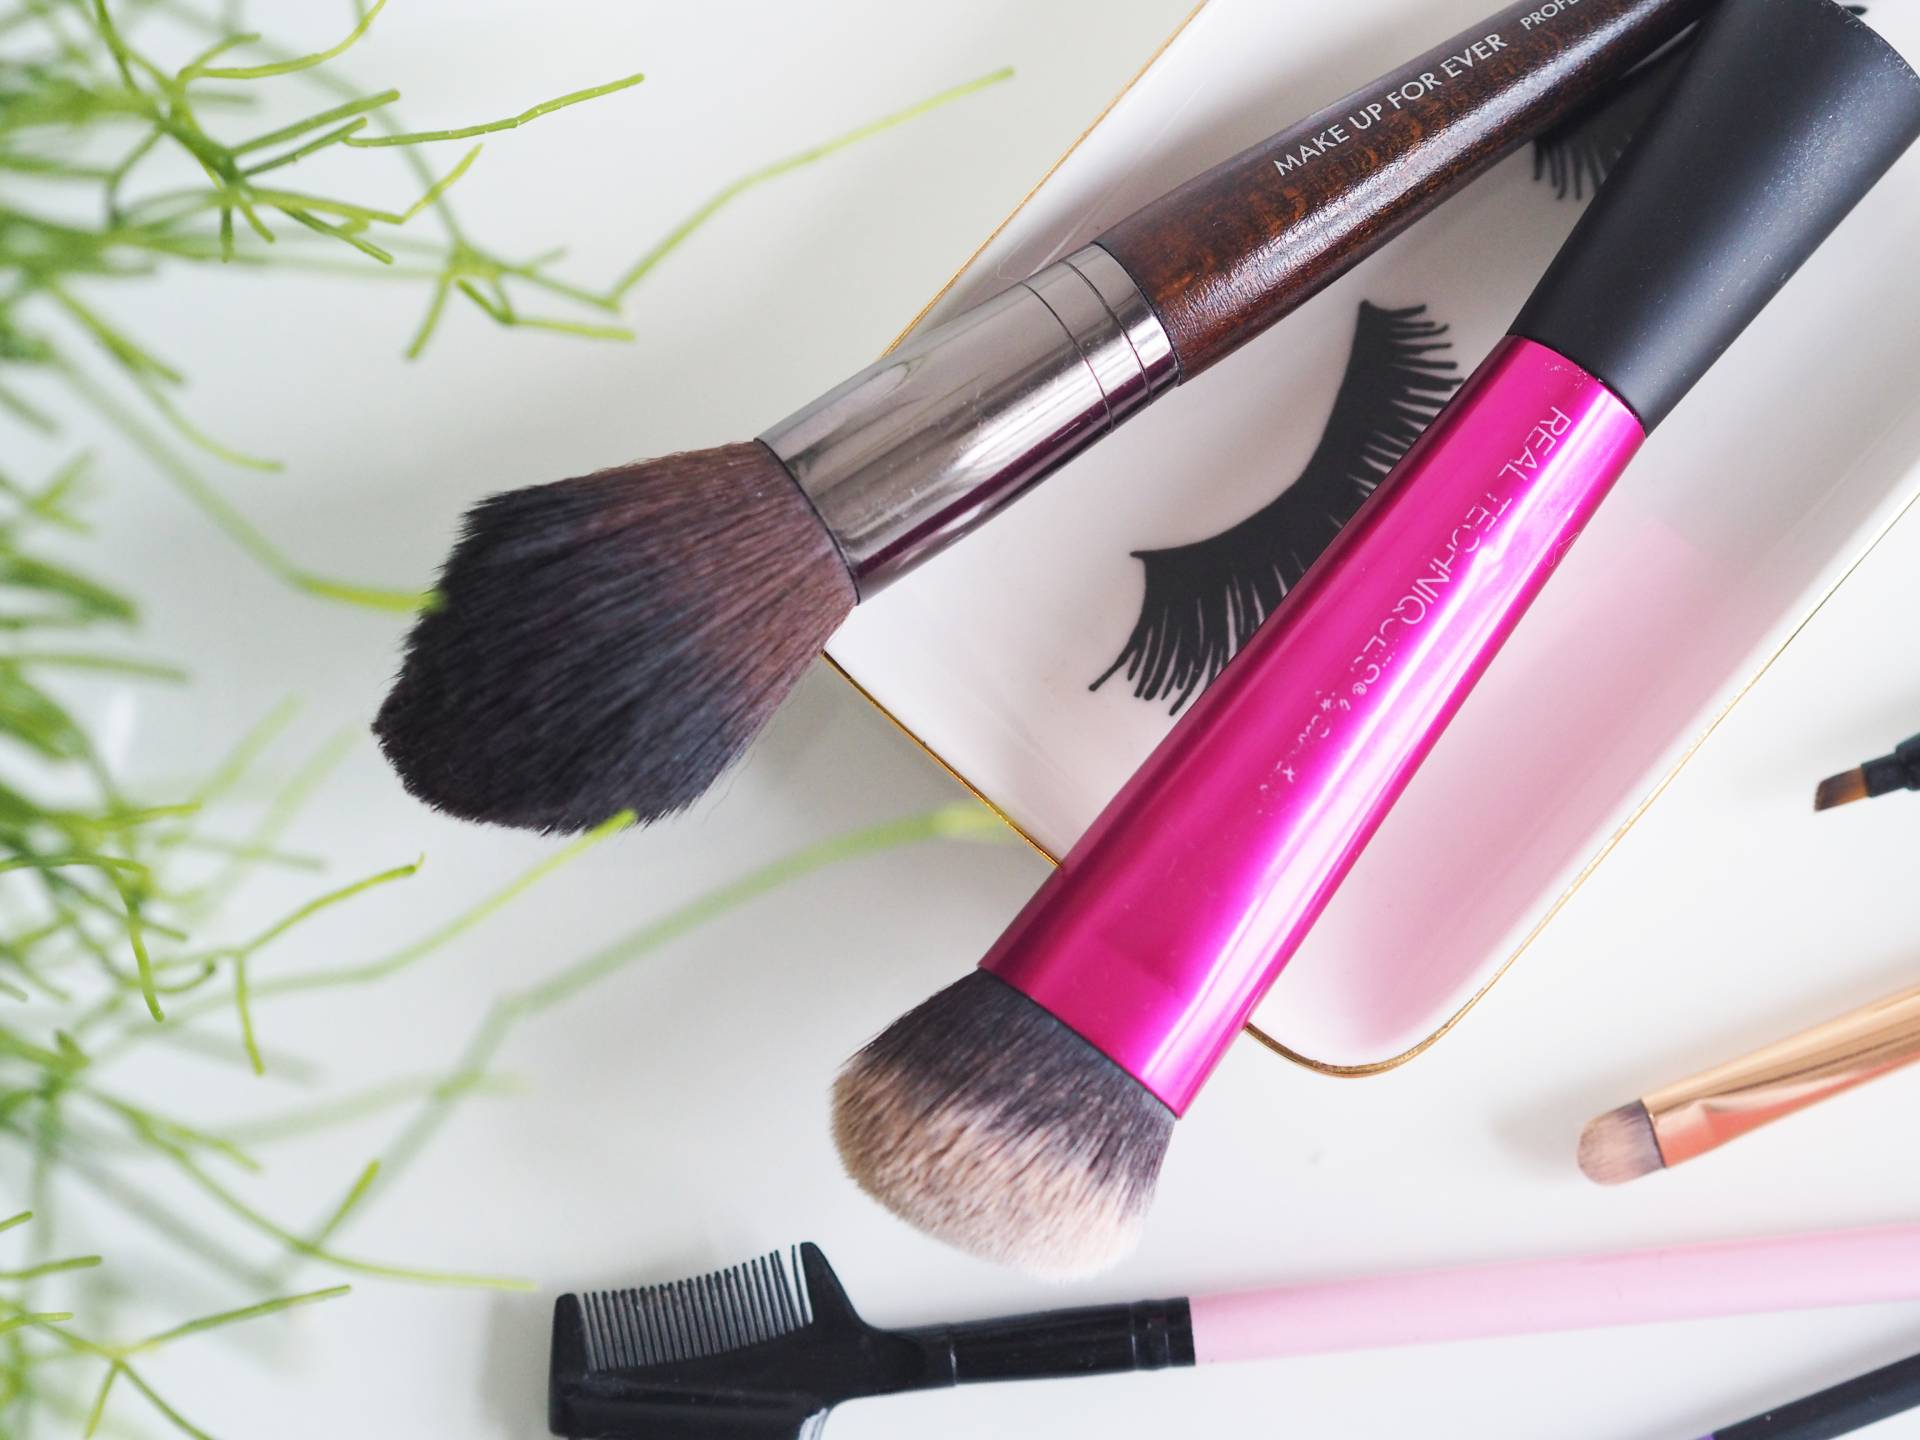 THE ONLY MAKE UP BRUSHES YOU NEED